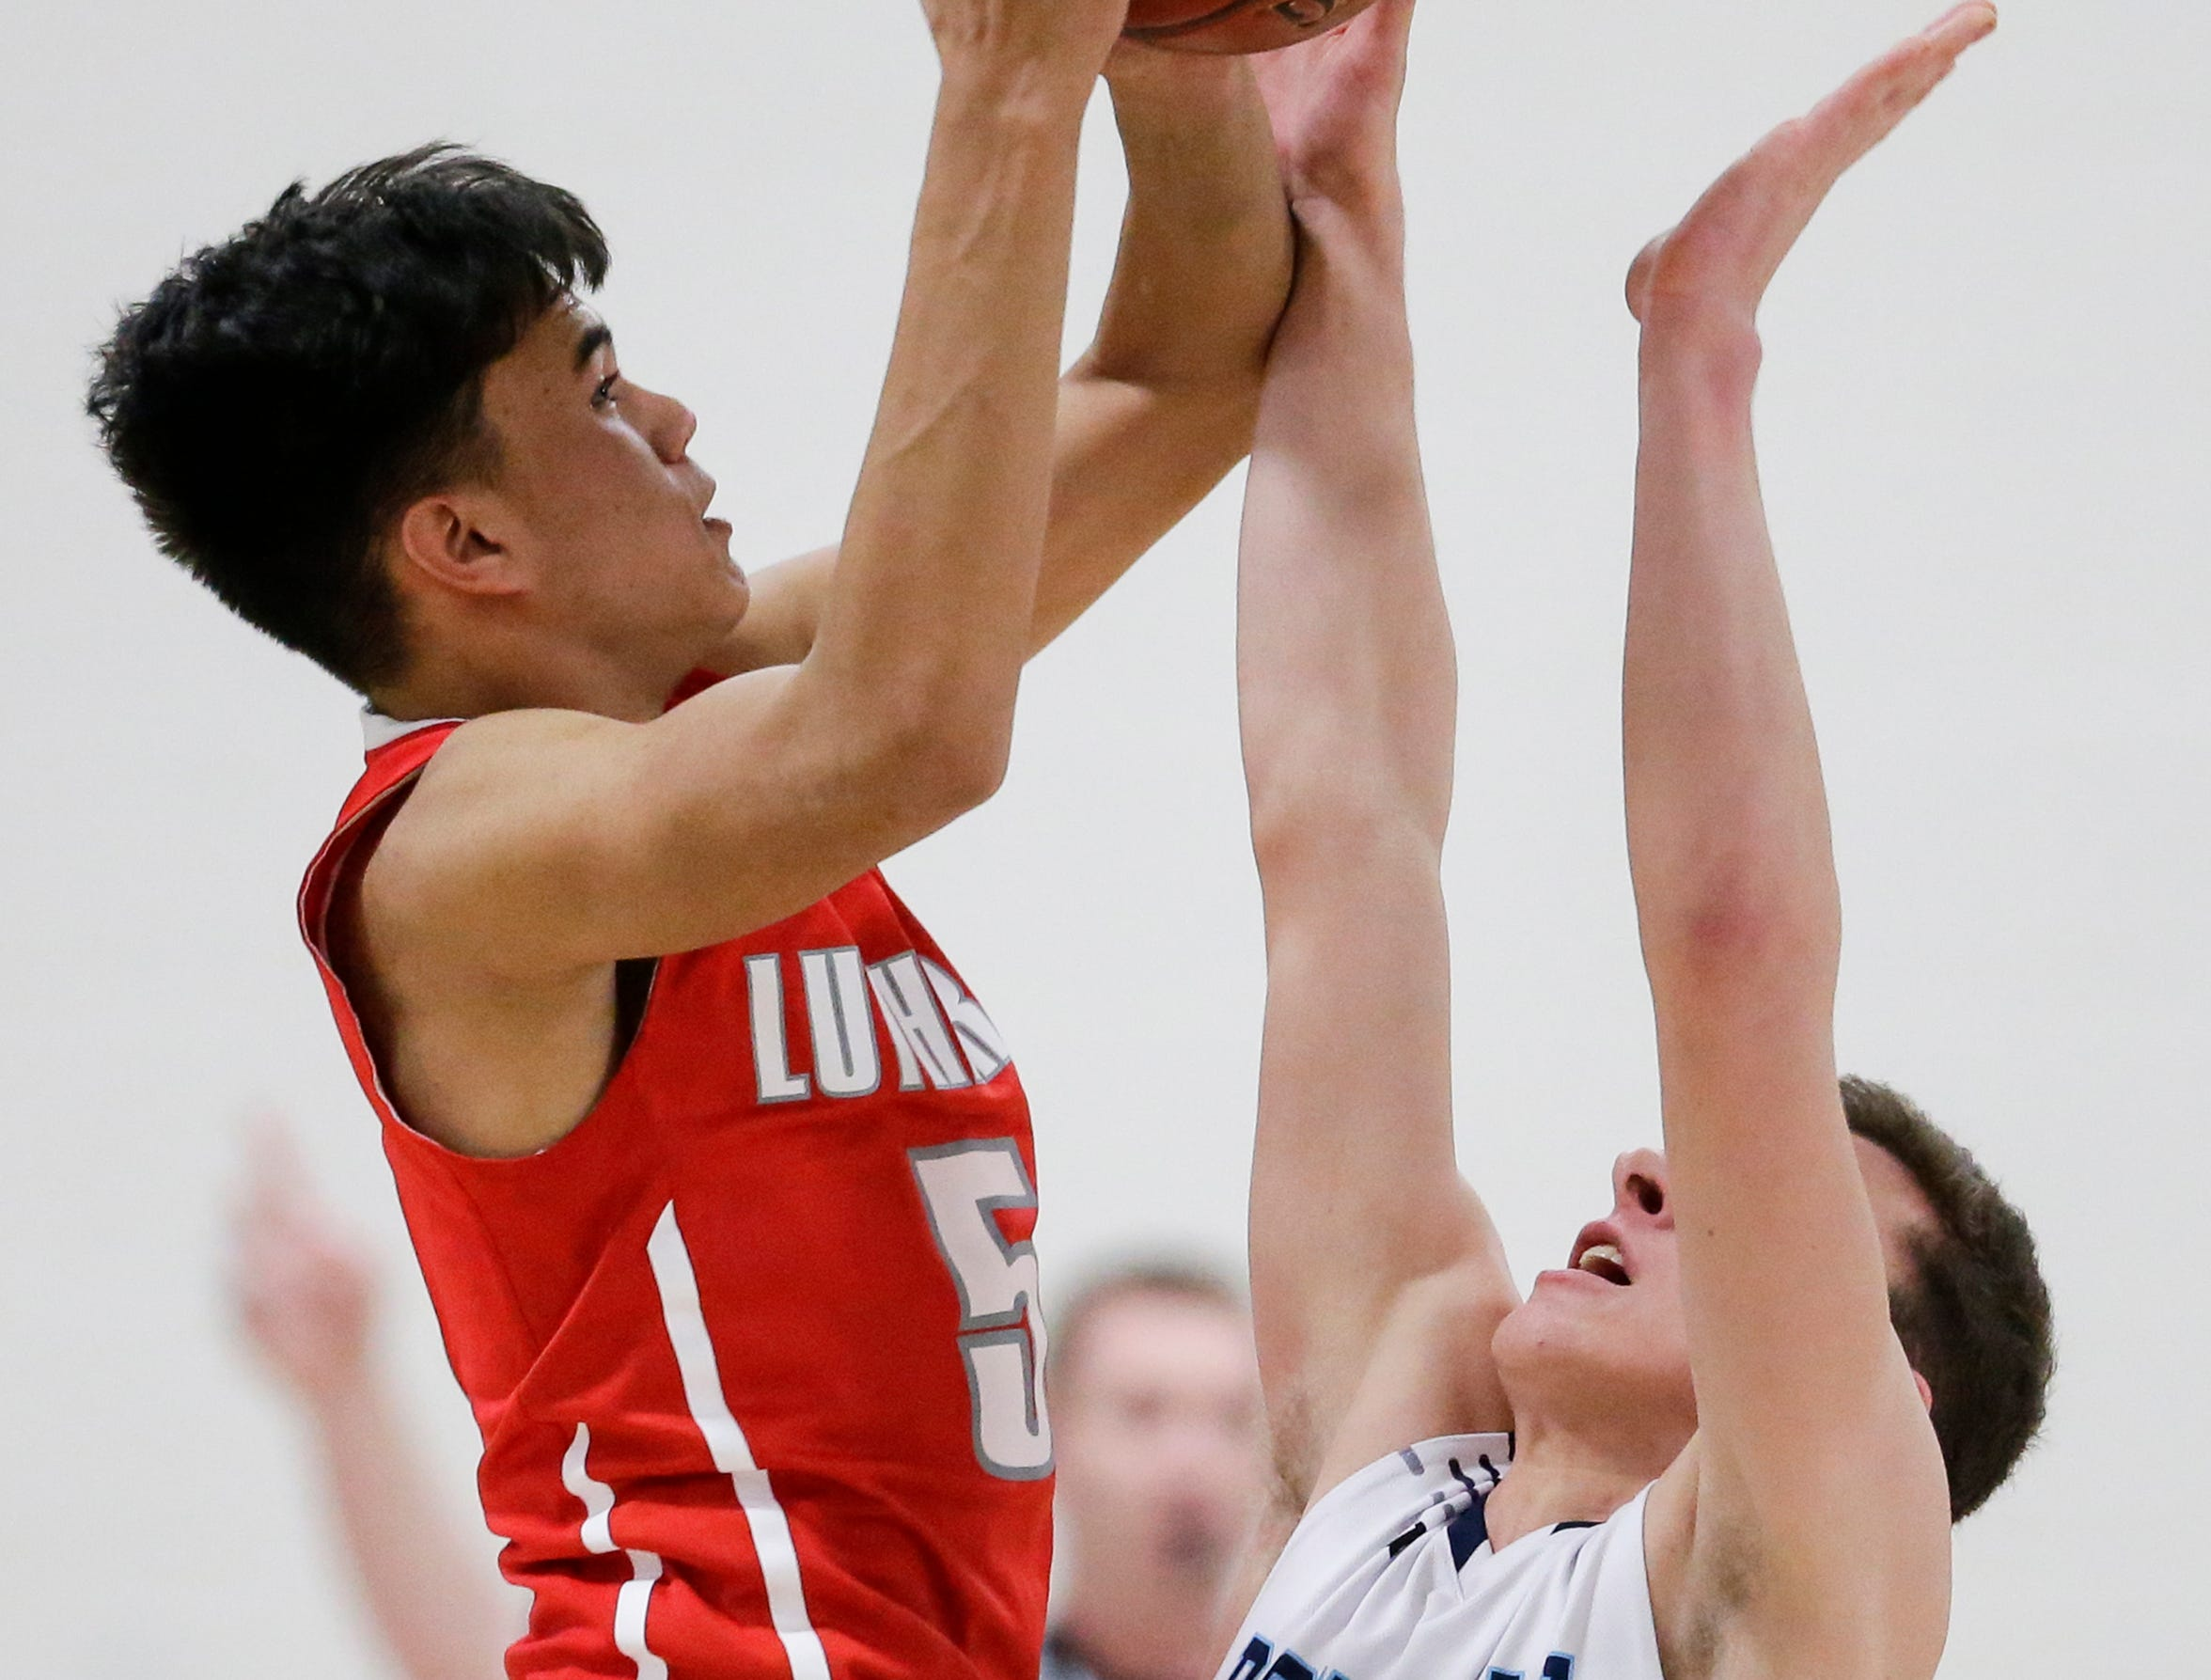 Manitowoc Lutheran's Santana Lomibao (5) puts up a shot over Roncalli's Daniel Burgarino (1) during a WIAA Division 4 regional semifinal game at Roncalli High School Friday, March 1, 2019, in Manitowoc, Wis. Joshua Clark/USA TODAY NETWORK-Wisconsin